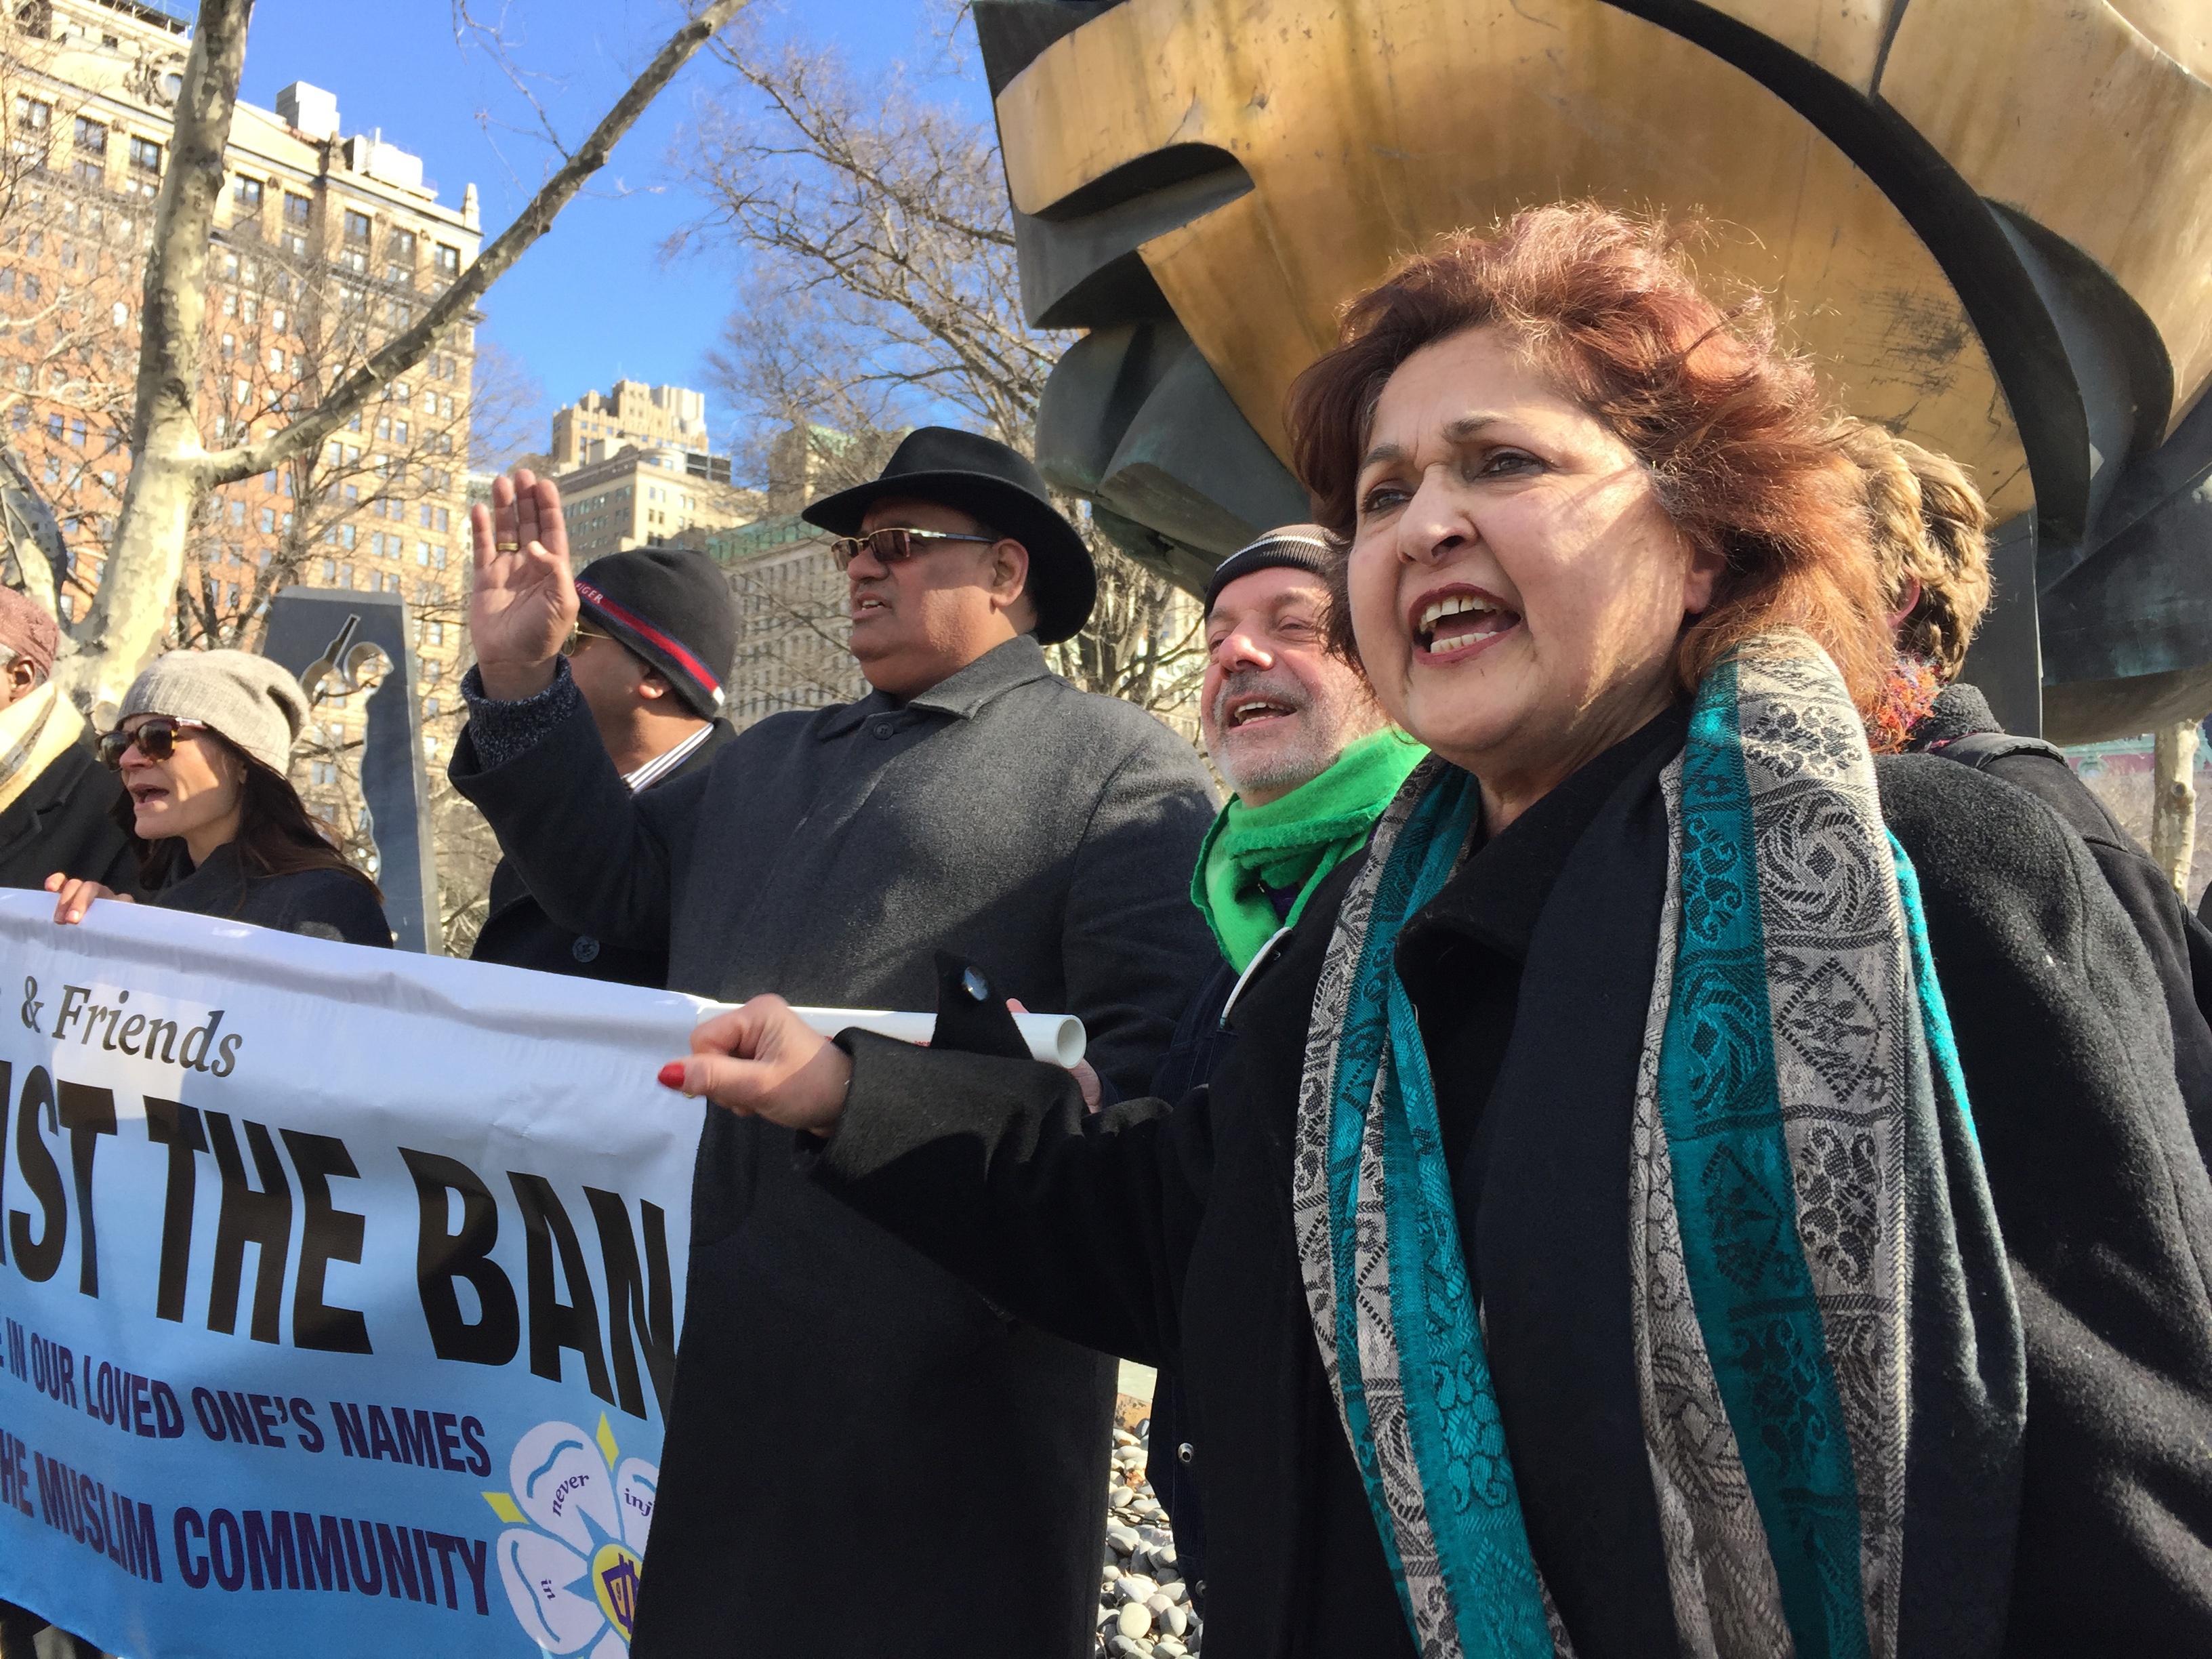 Talat Hamdani (right) and other family members of 9/11 victims rally against President Donald Trump's immigration order in New York City on Feb. 16, 2017.